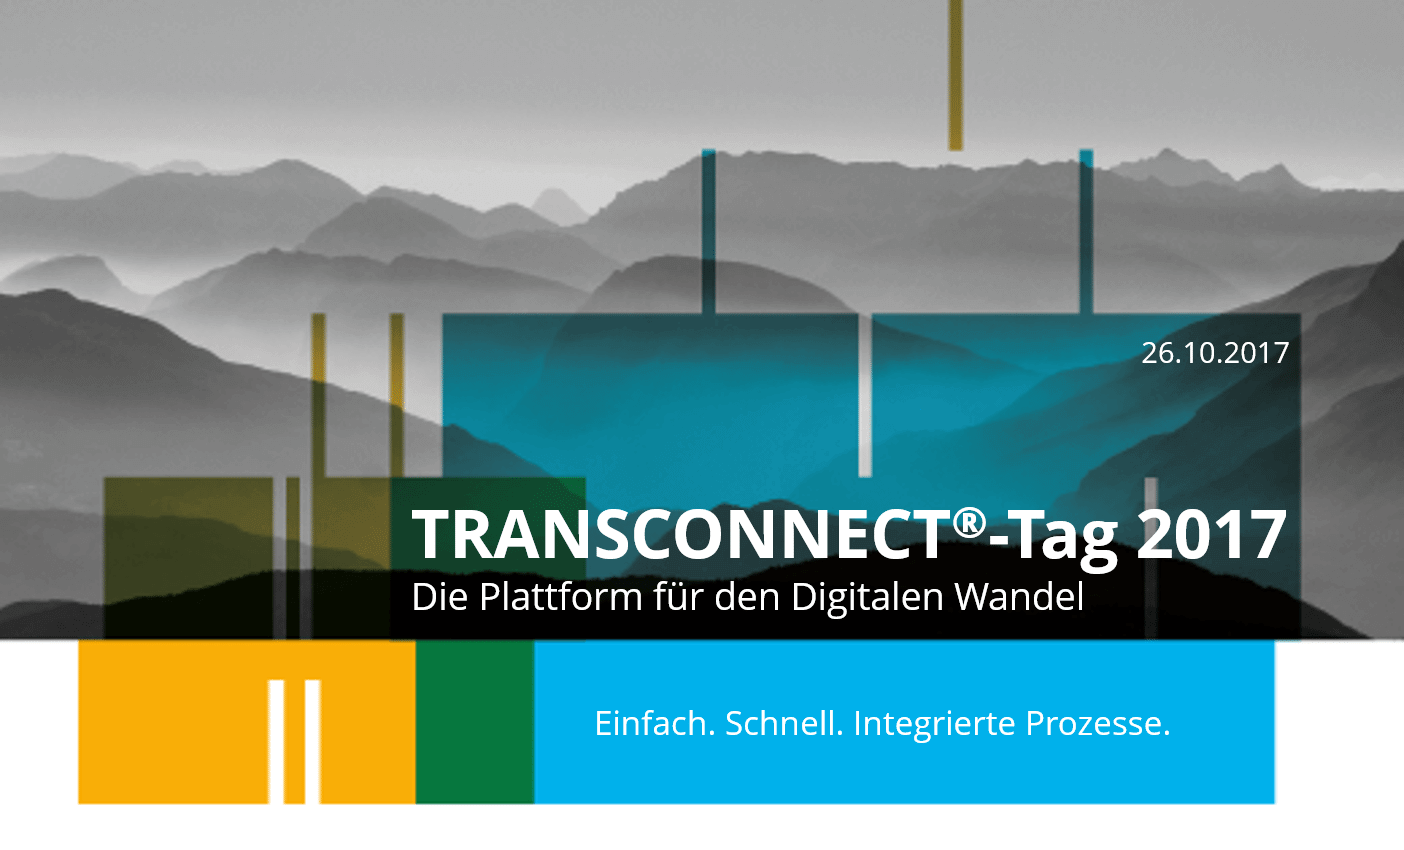 TRANSCONNECT®-TAG AM 26.10.2017 in Dresden